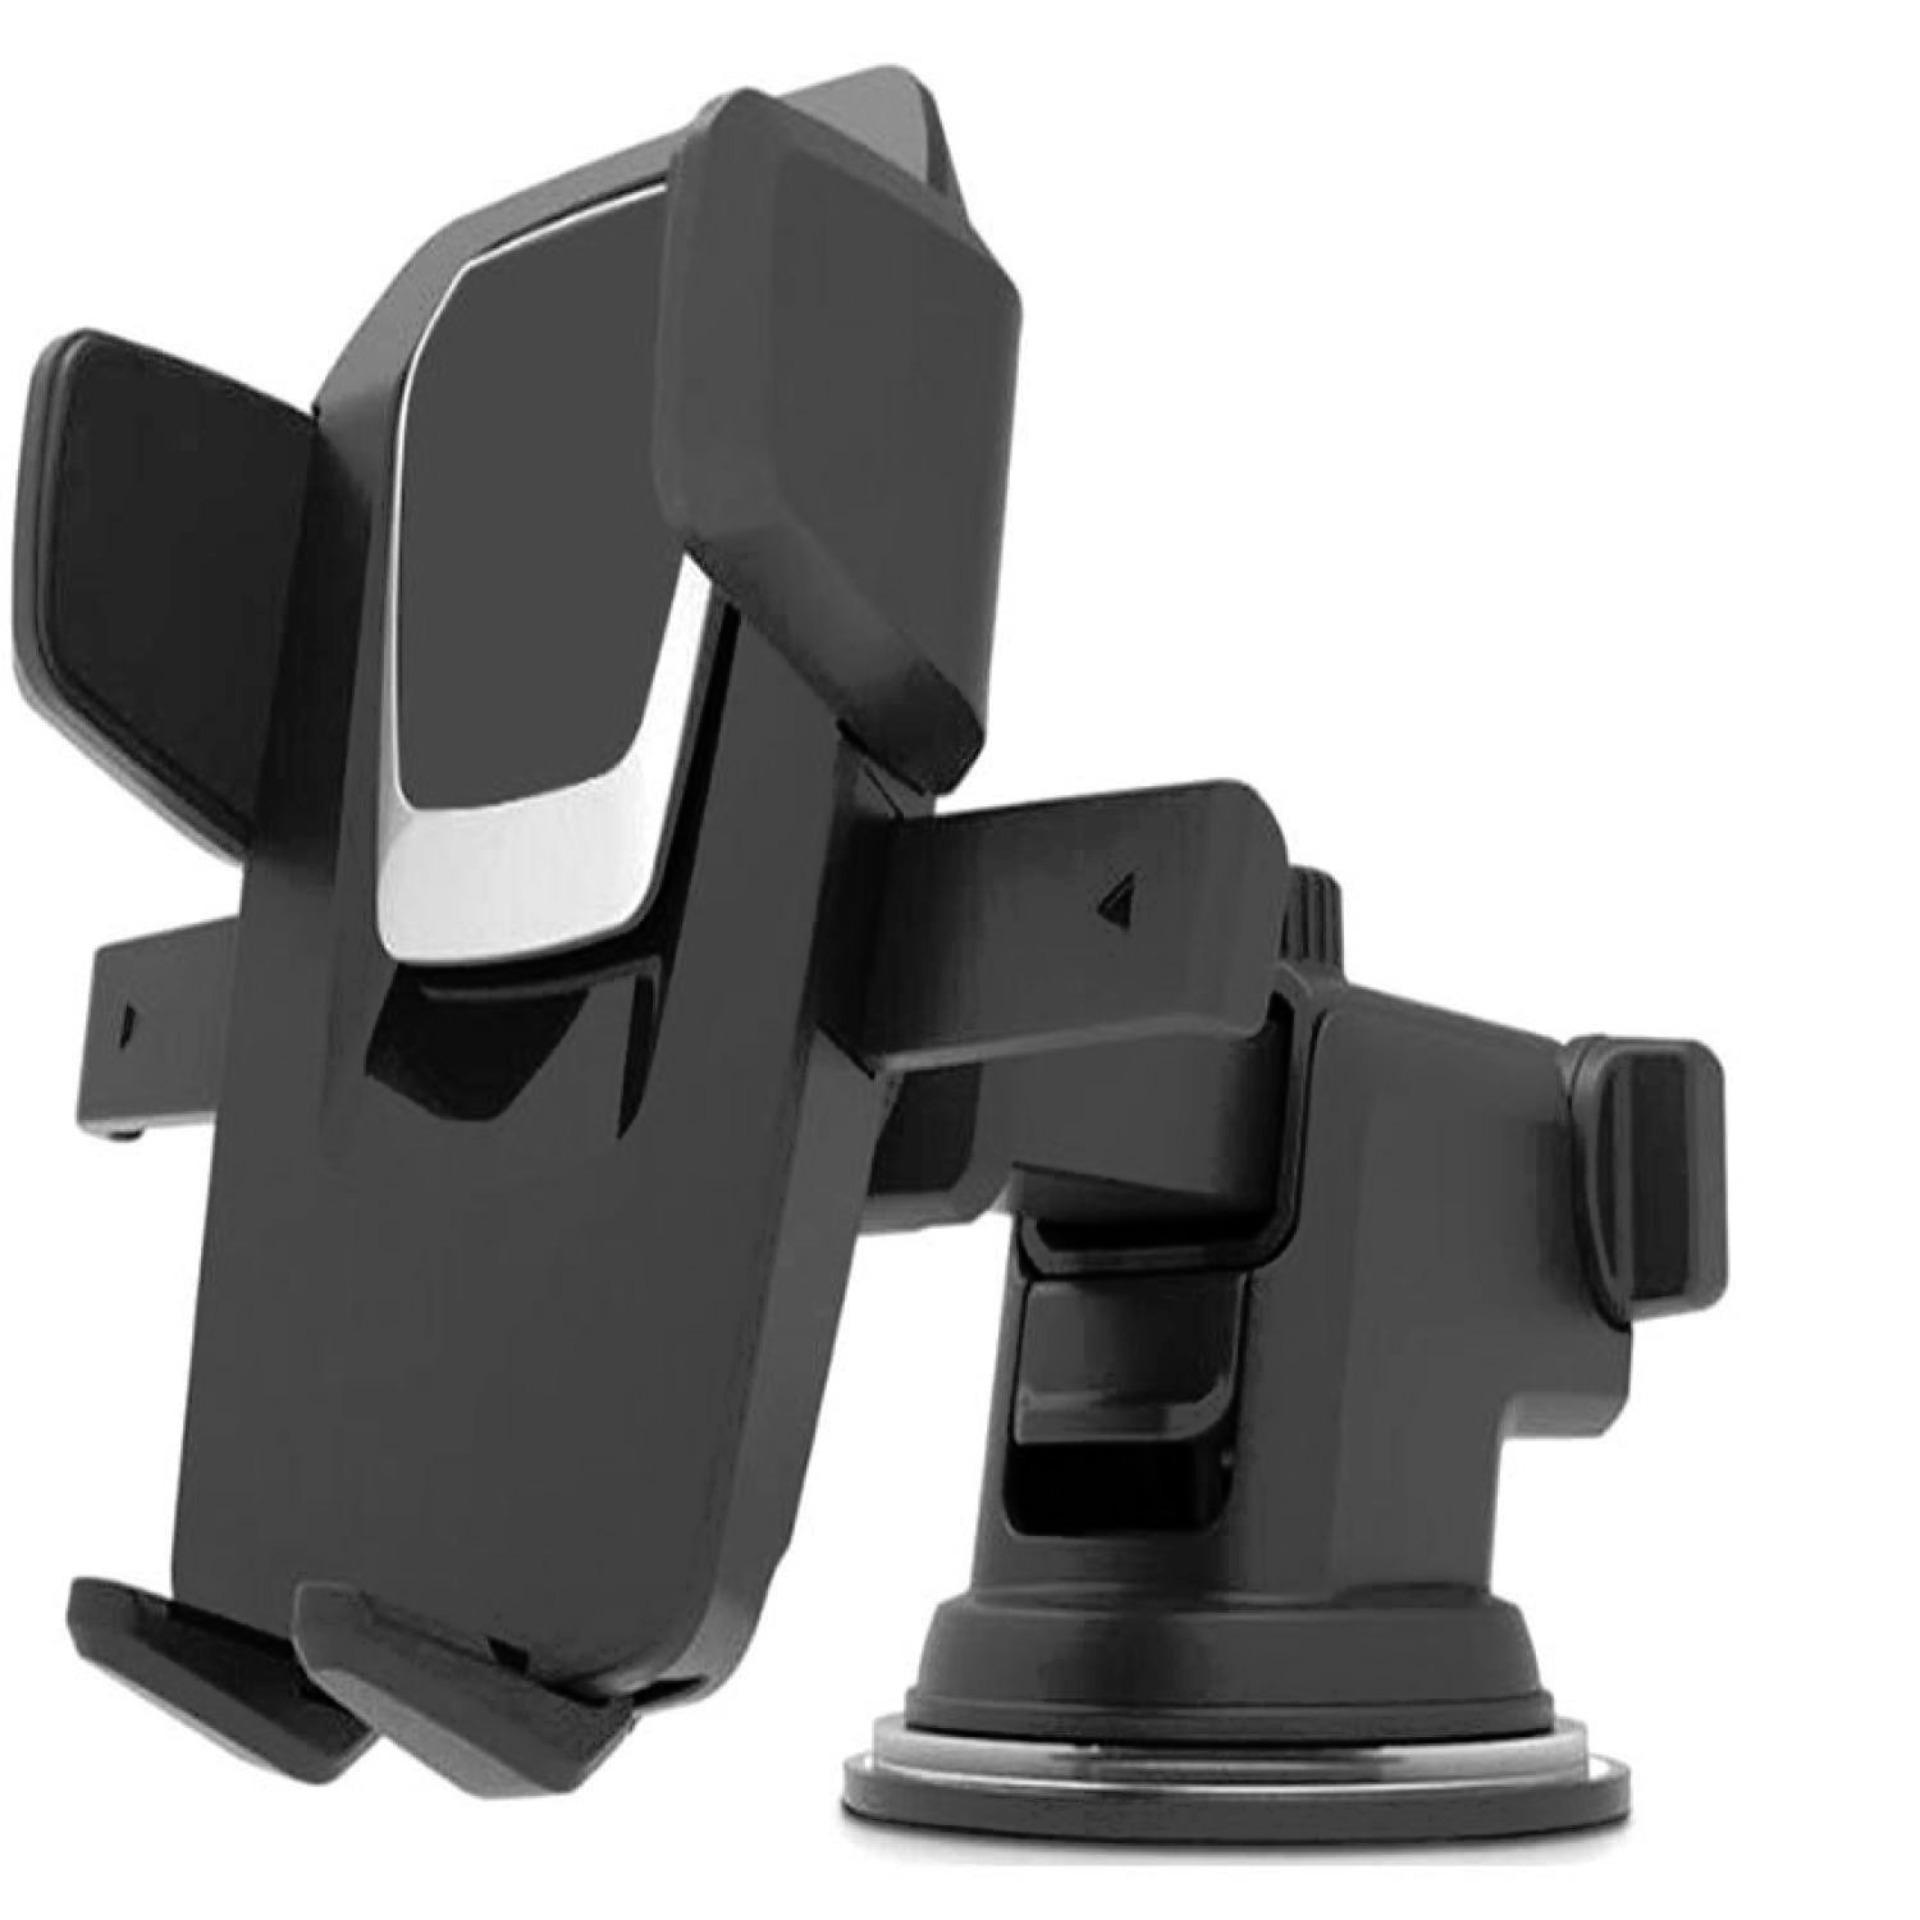 Shock Price Universal Mobile Phone Car Holder - Hitam best price - Hanya Rp80.208